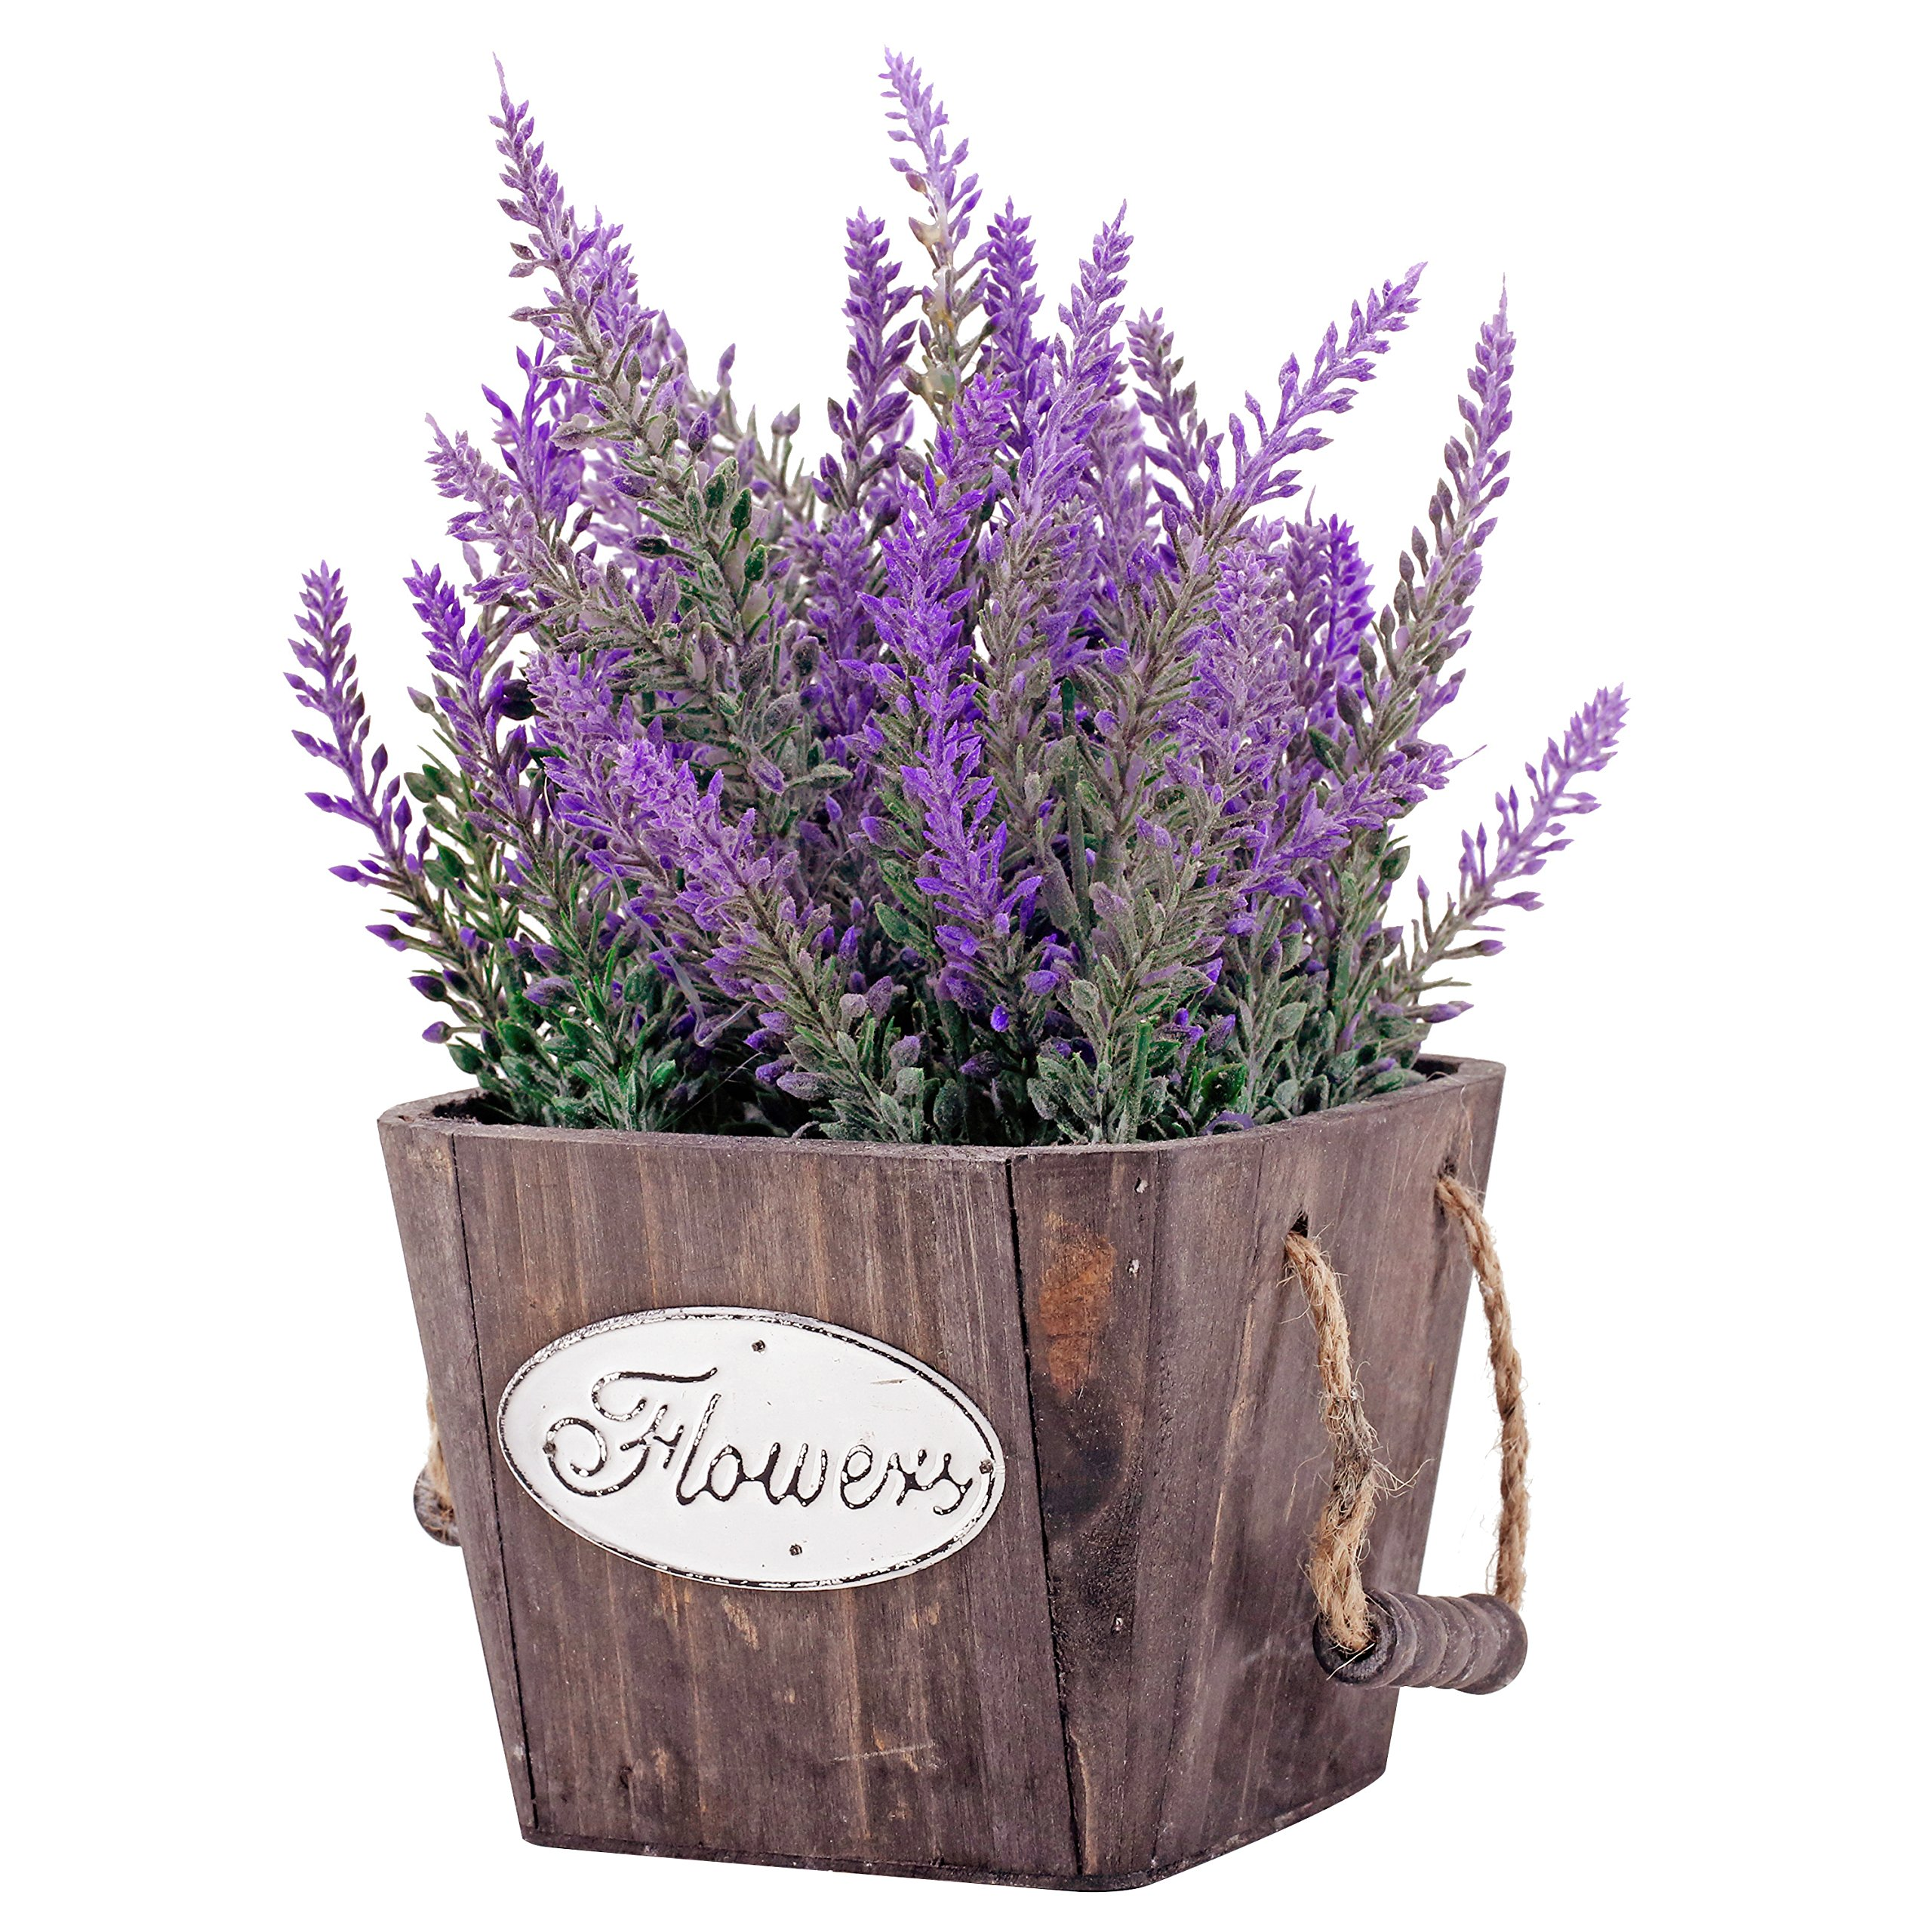 Small Artificial Lavender Plant in Country Rustic Wood Flower Planter with Rope Handles